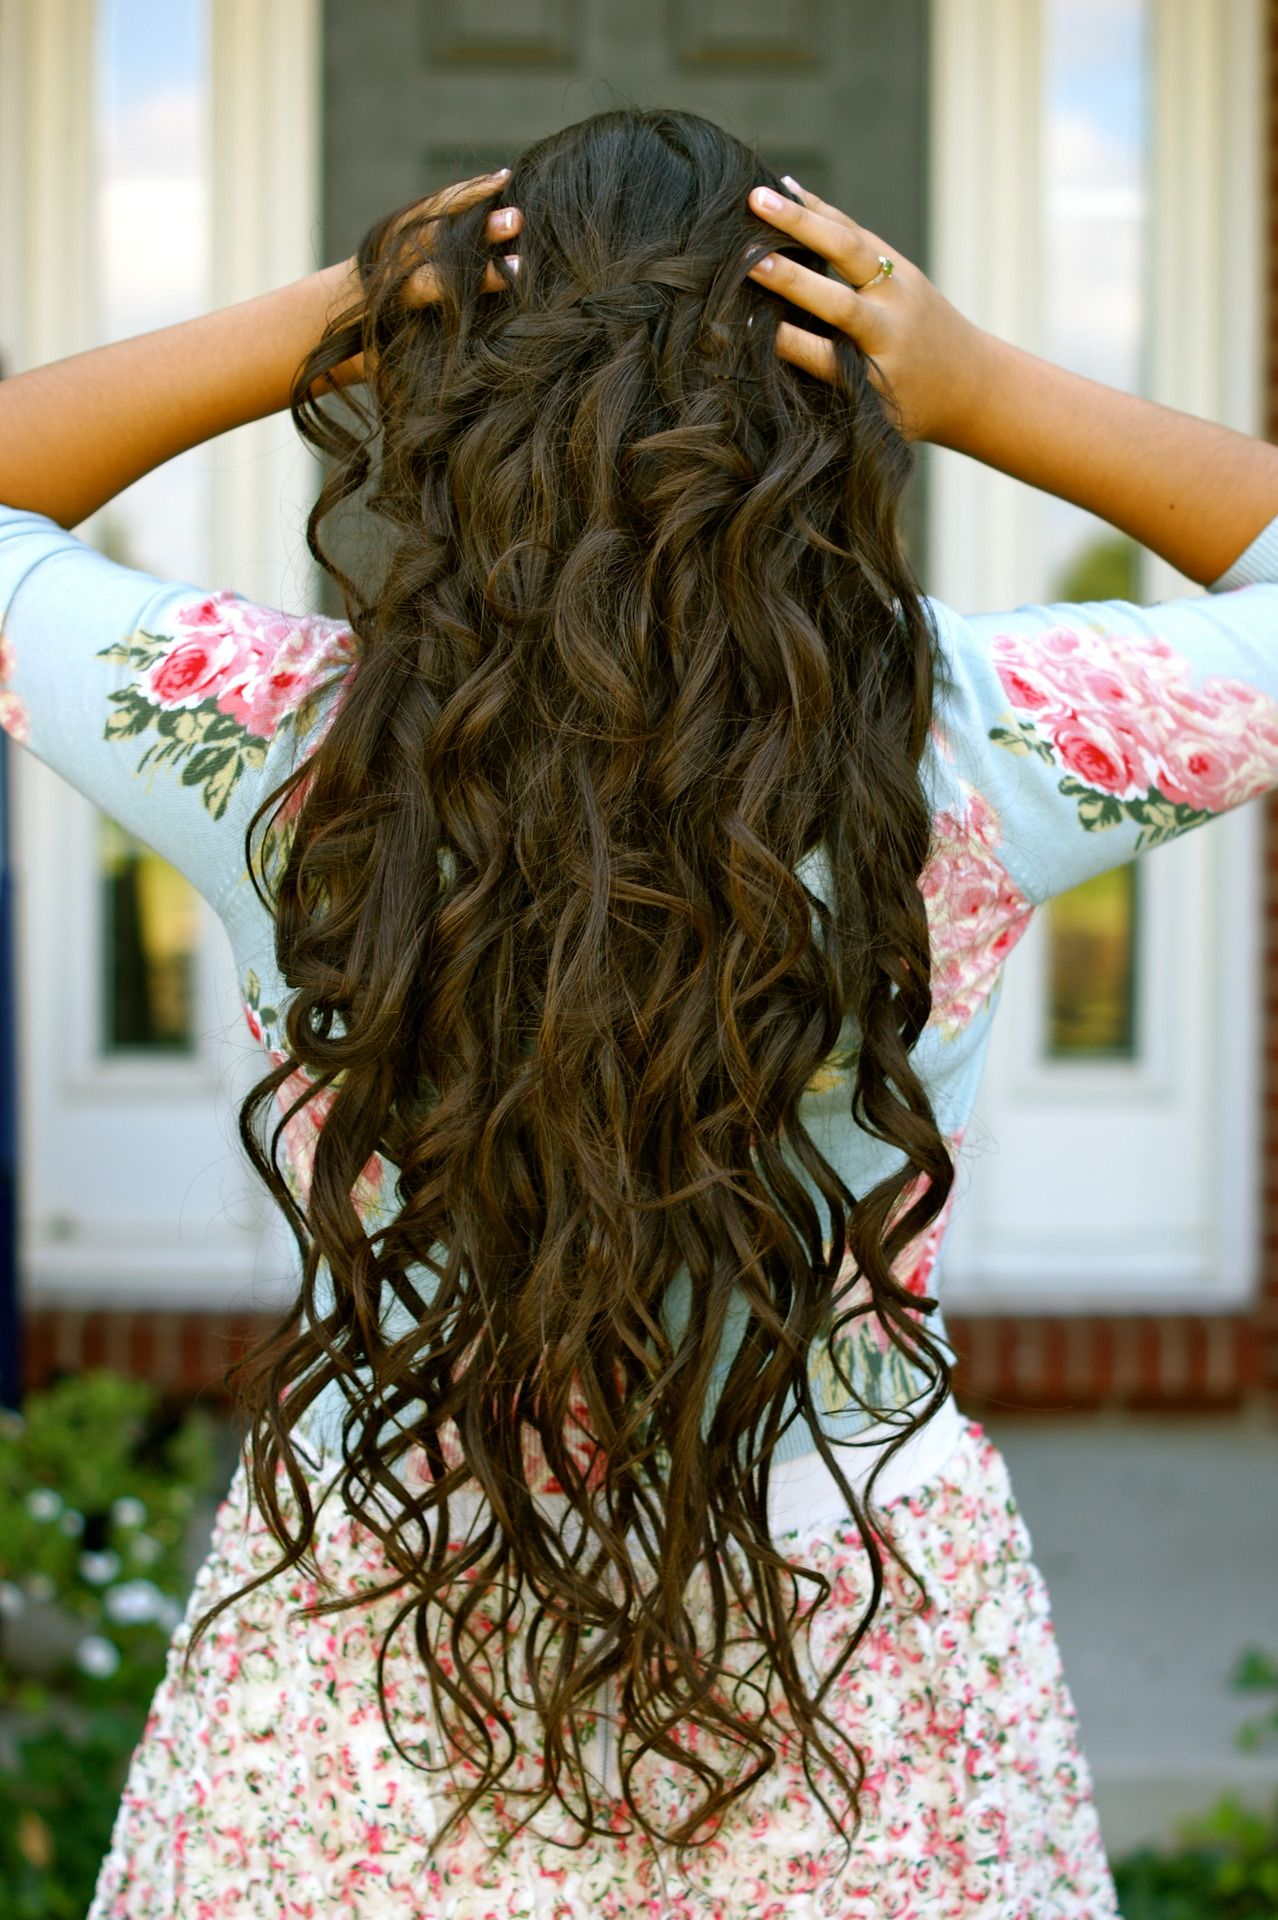 Ha Hair Accessories For Apostolic Long Hair - Wish my hair would doo this and be this long